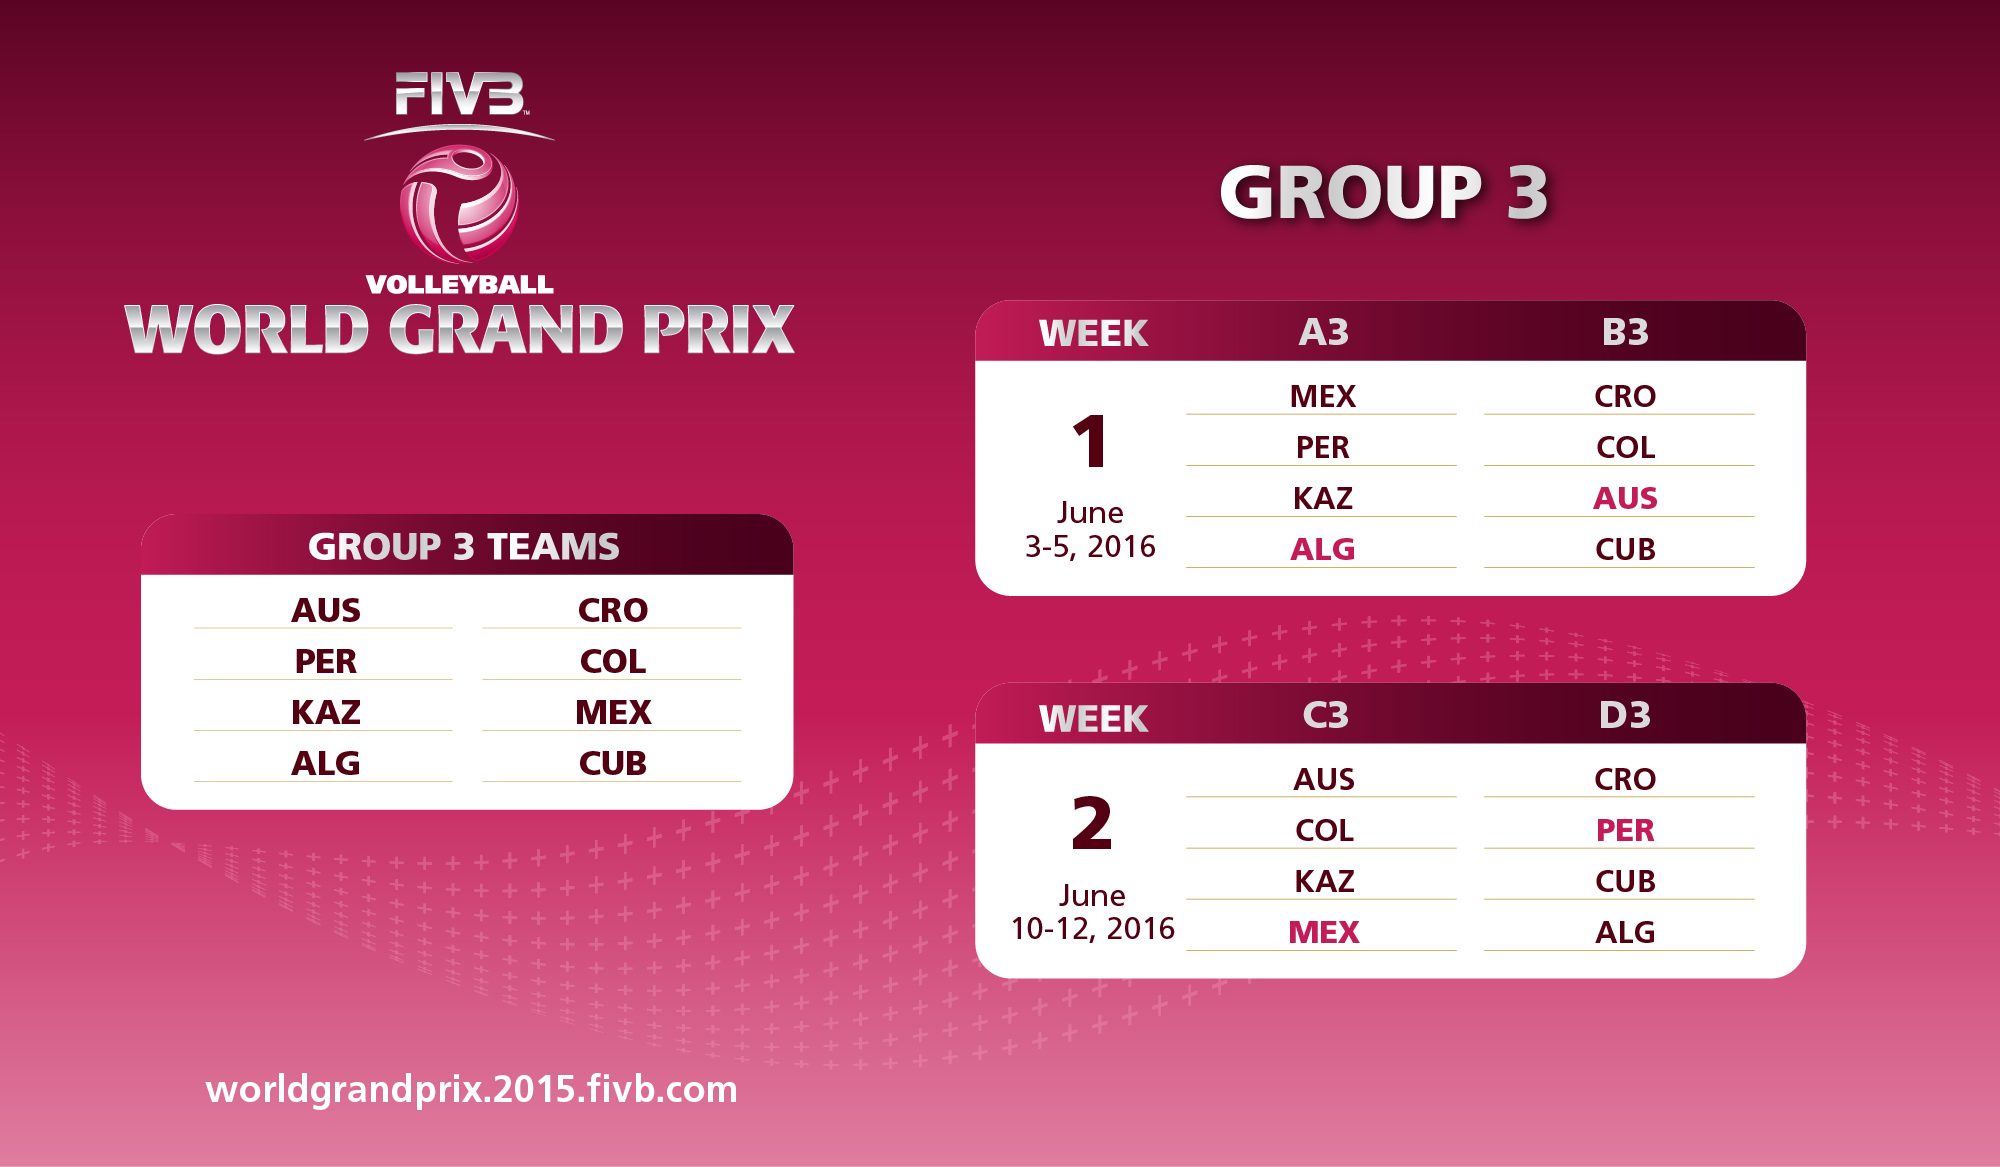 Group 3 pools